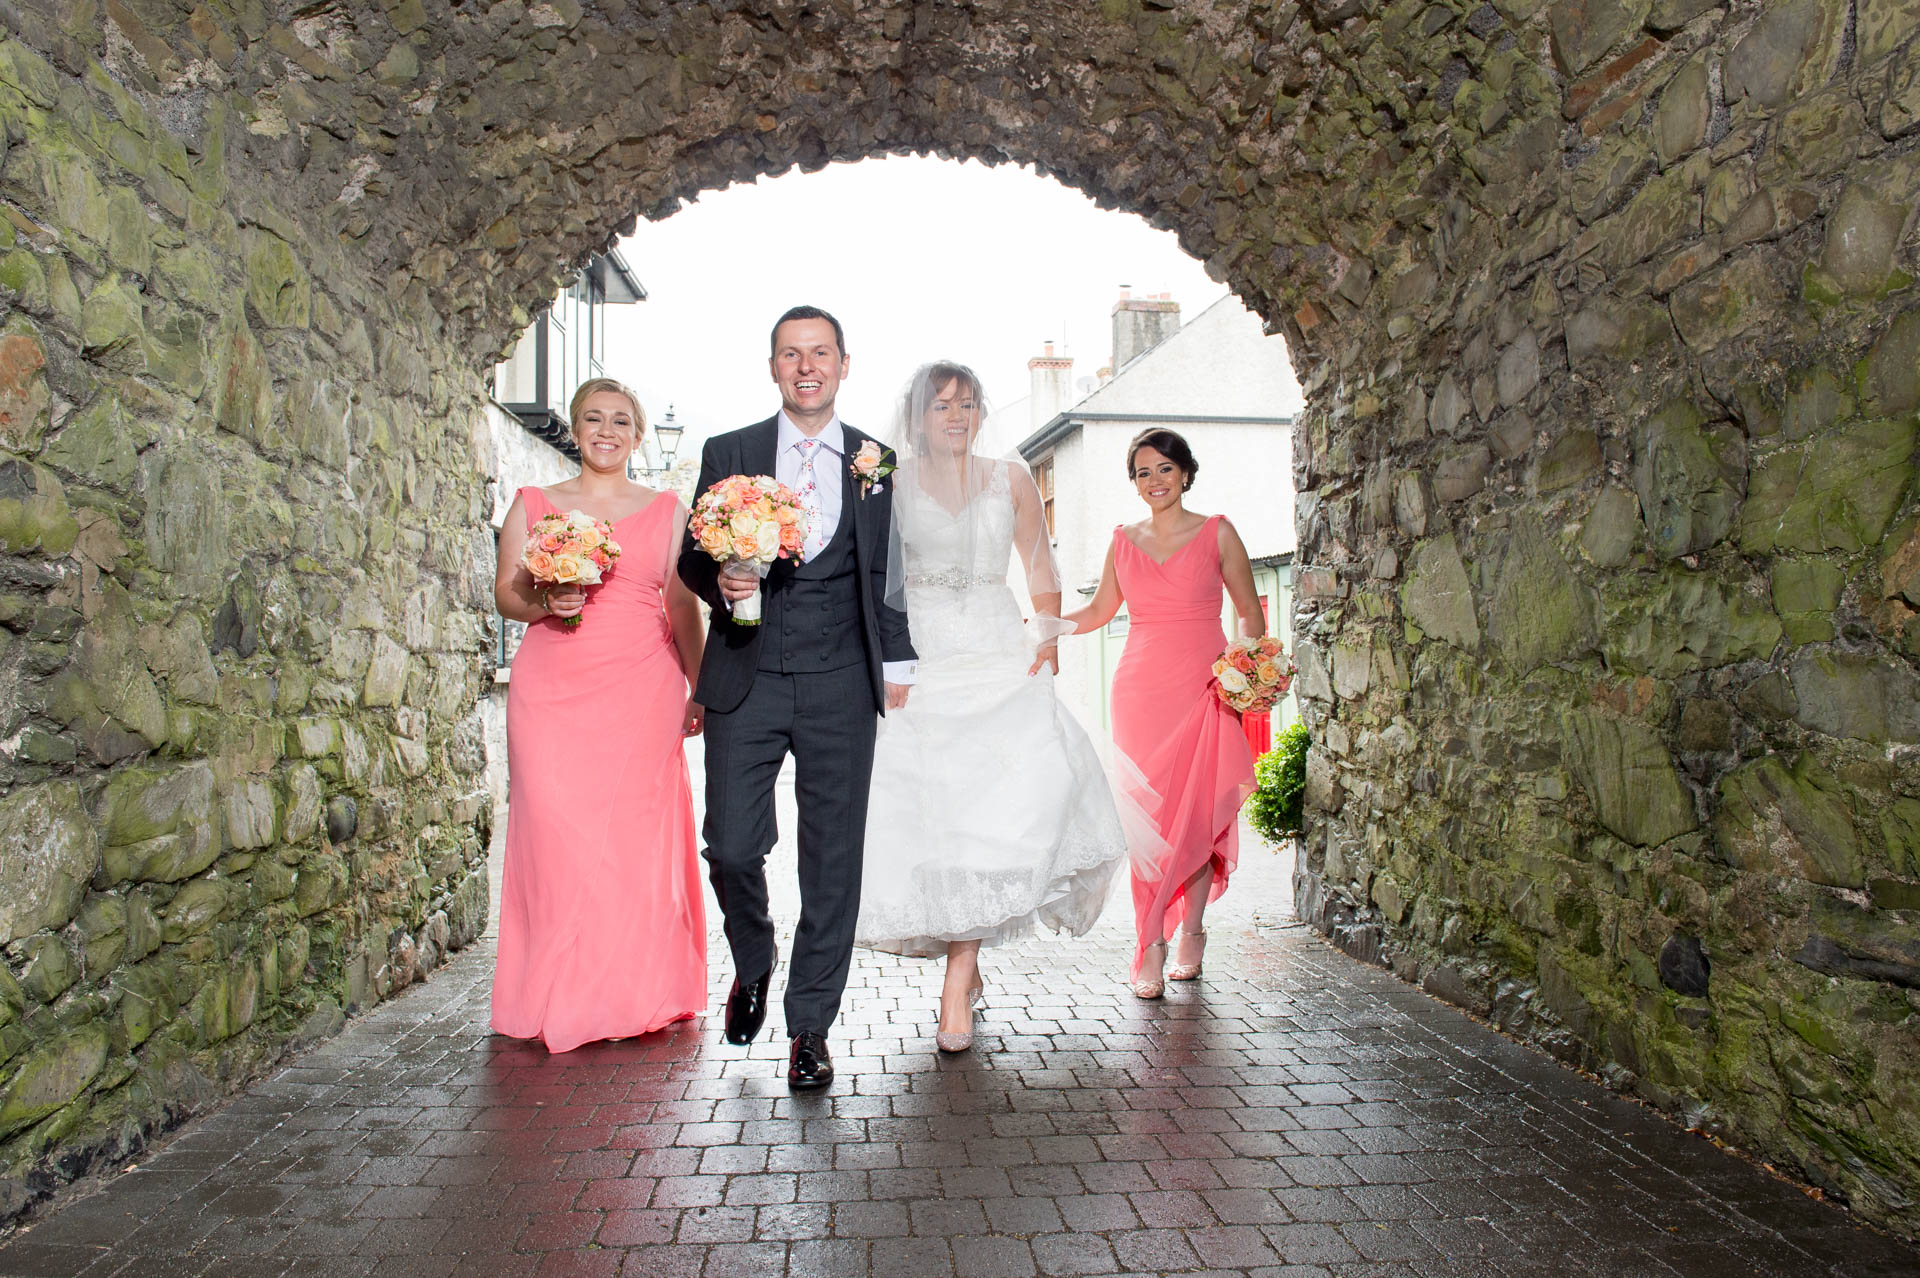 Picture of Ruth and Robert at Carlingford on their wedding day captured by Fermanagh, Tyrone and Northern Ireland Wedding Photographer, Trevor Lucy Photography